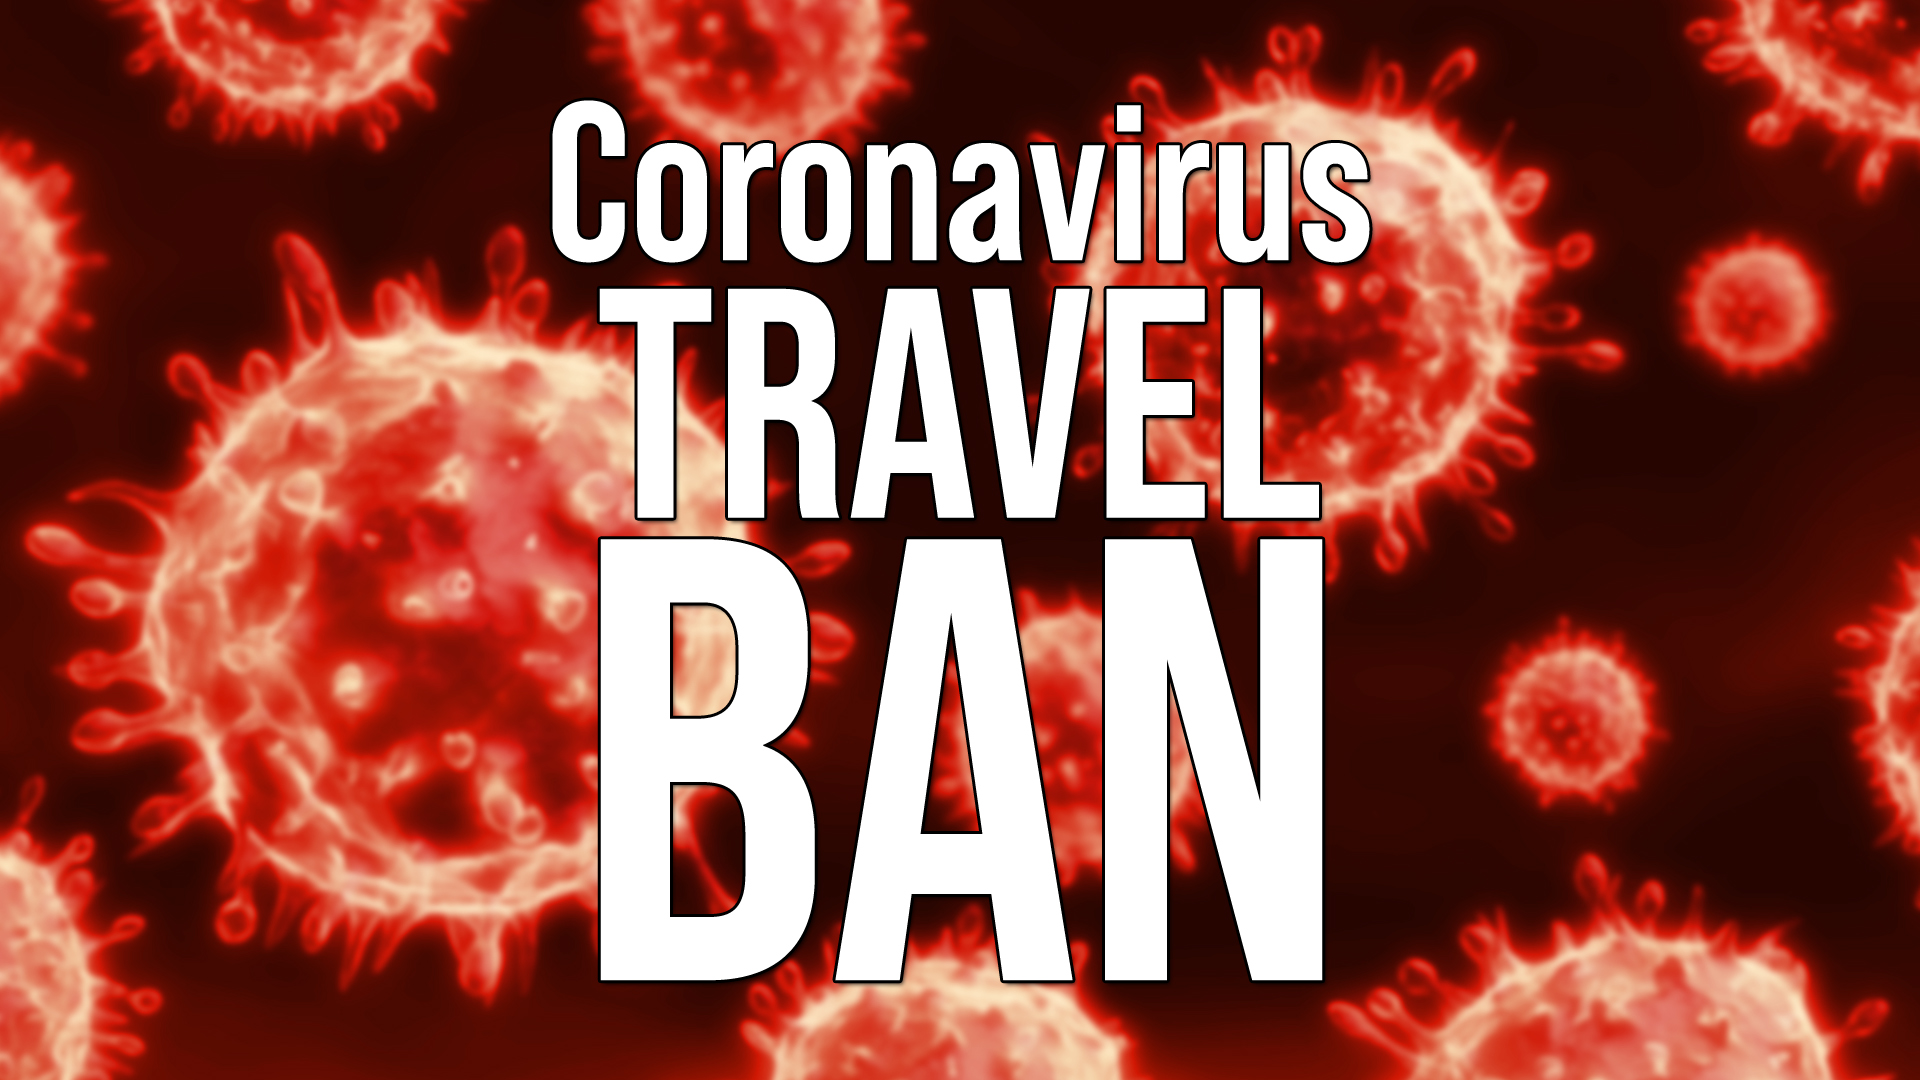 Coronavirus U.S. Travel Ban Emergency Declaration Prepared by the White House, National ENQ Sources Confirm